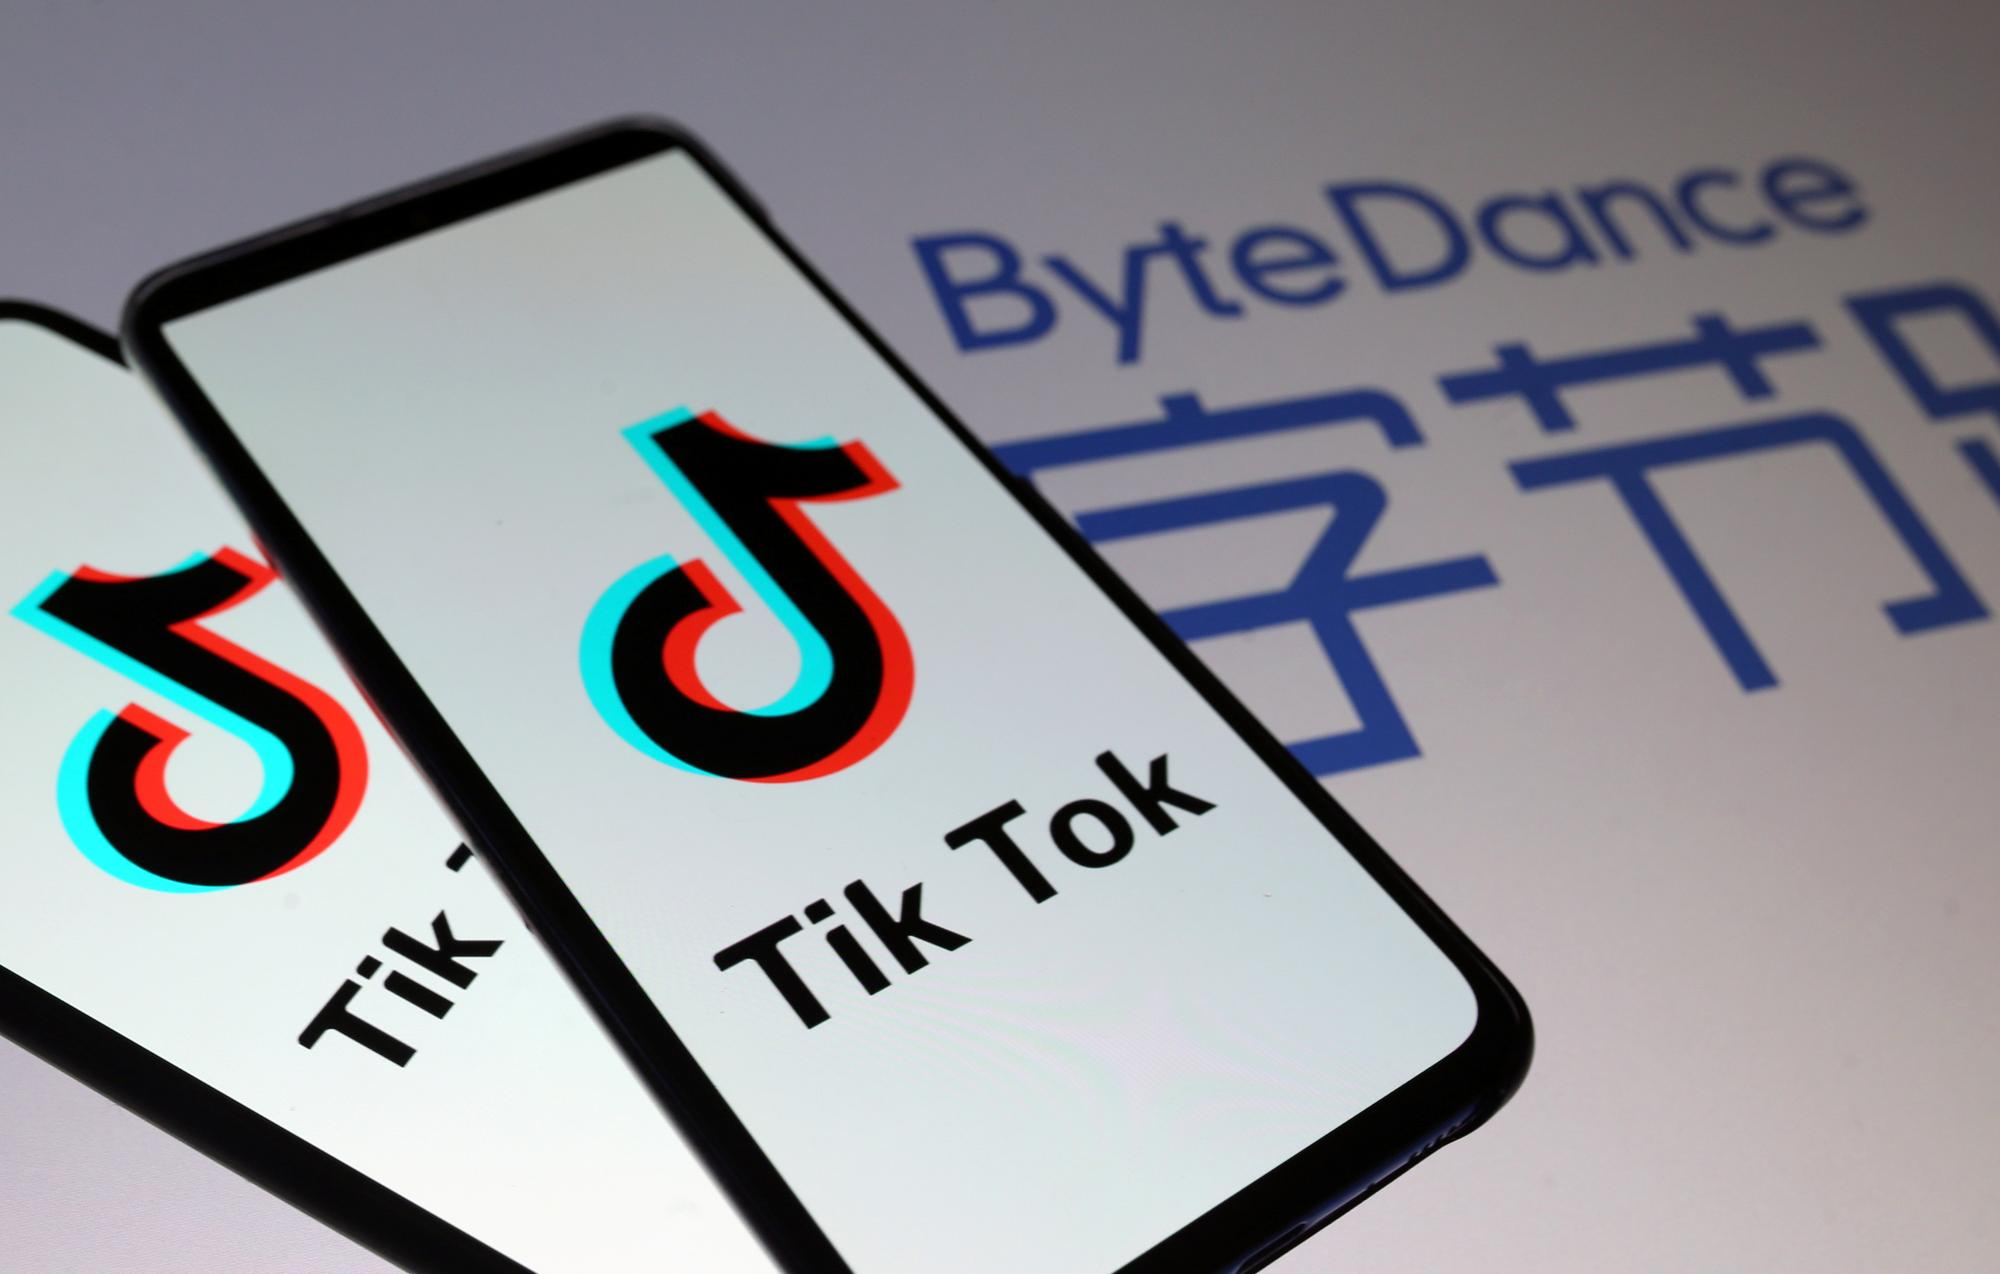 Google, Apple asked if apps like TikTok must disclose foreign ties